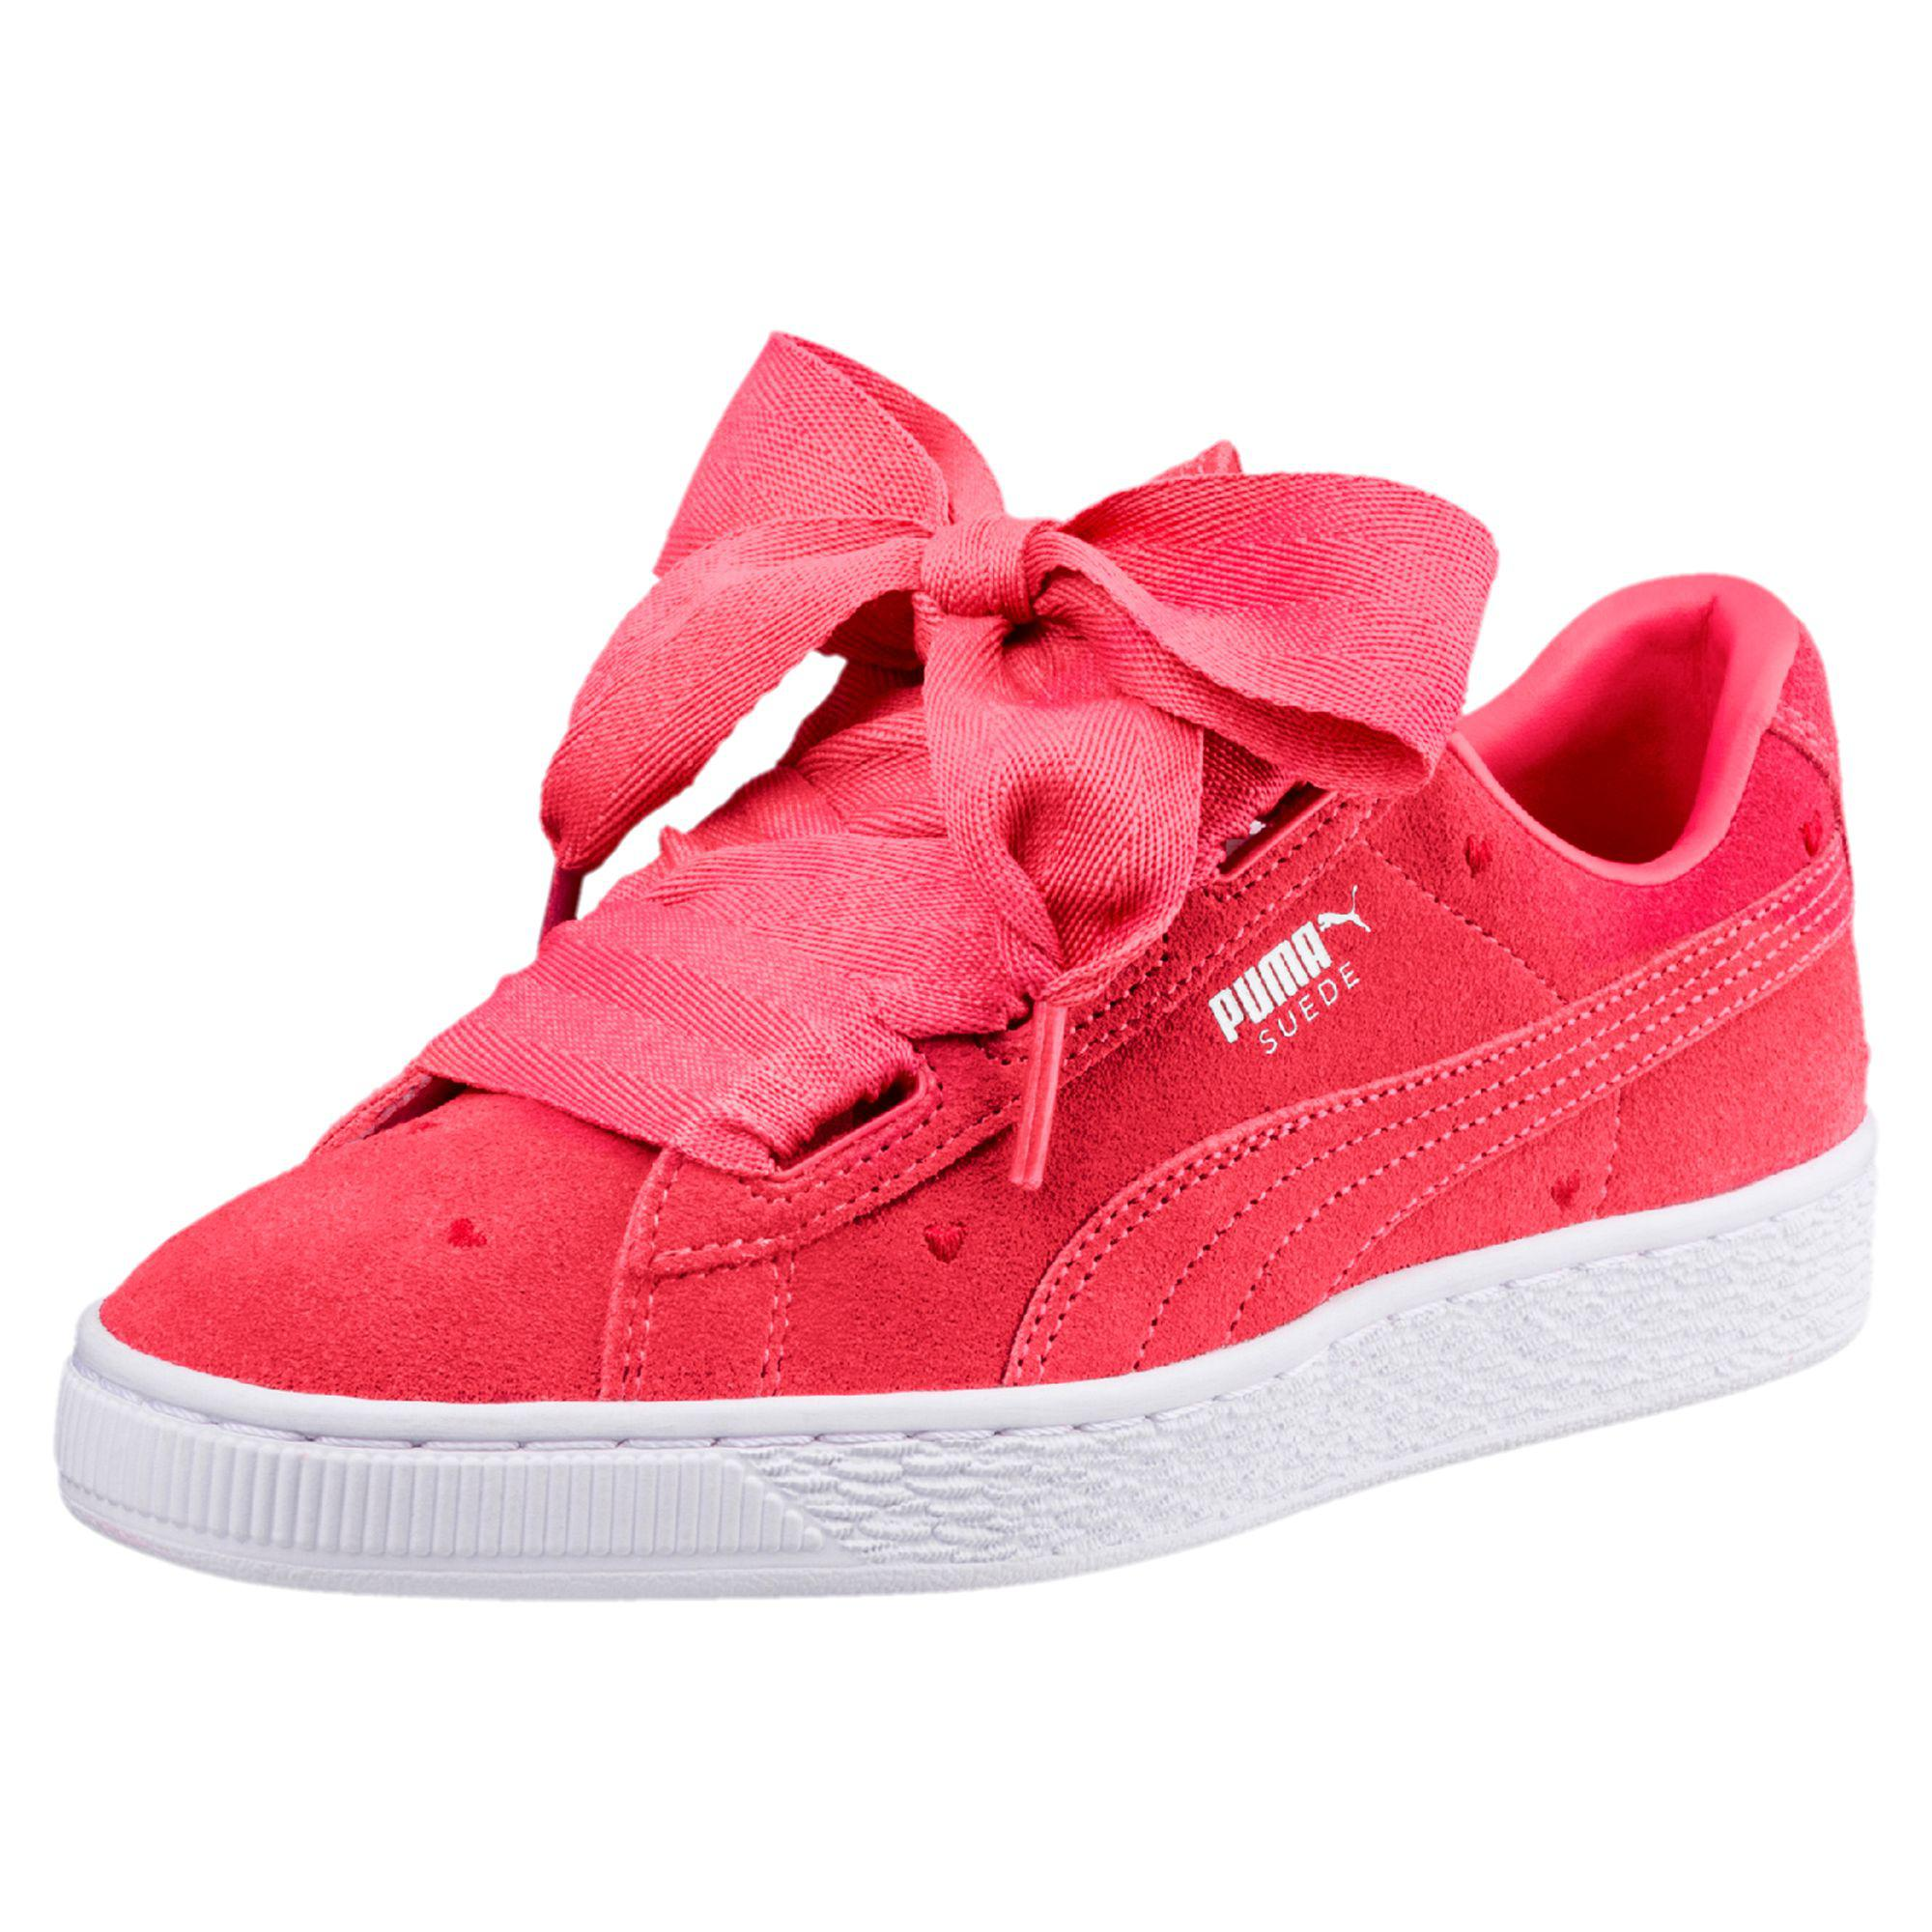 premium selection 132ff 14597 Women's Pink Suede Heart Valentine Jr Sneakers